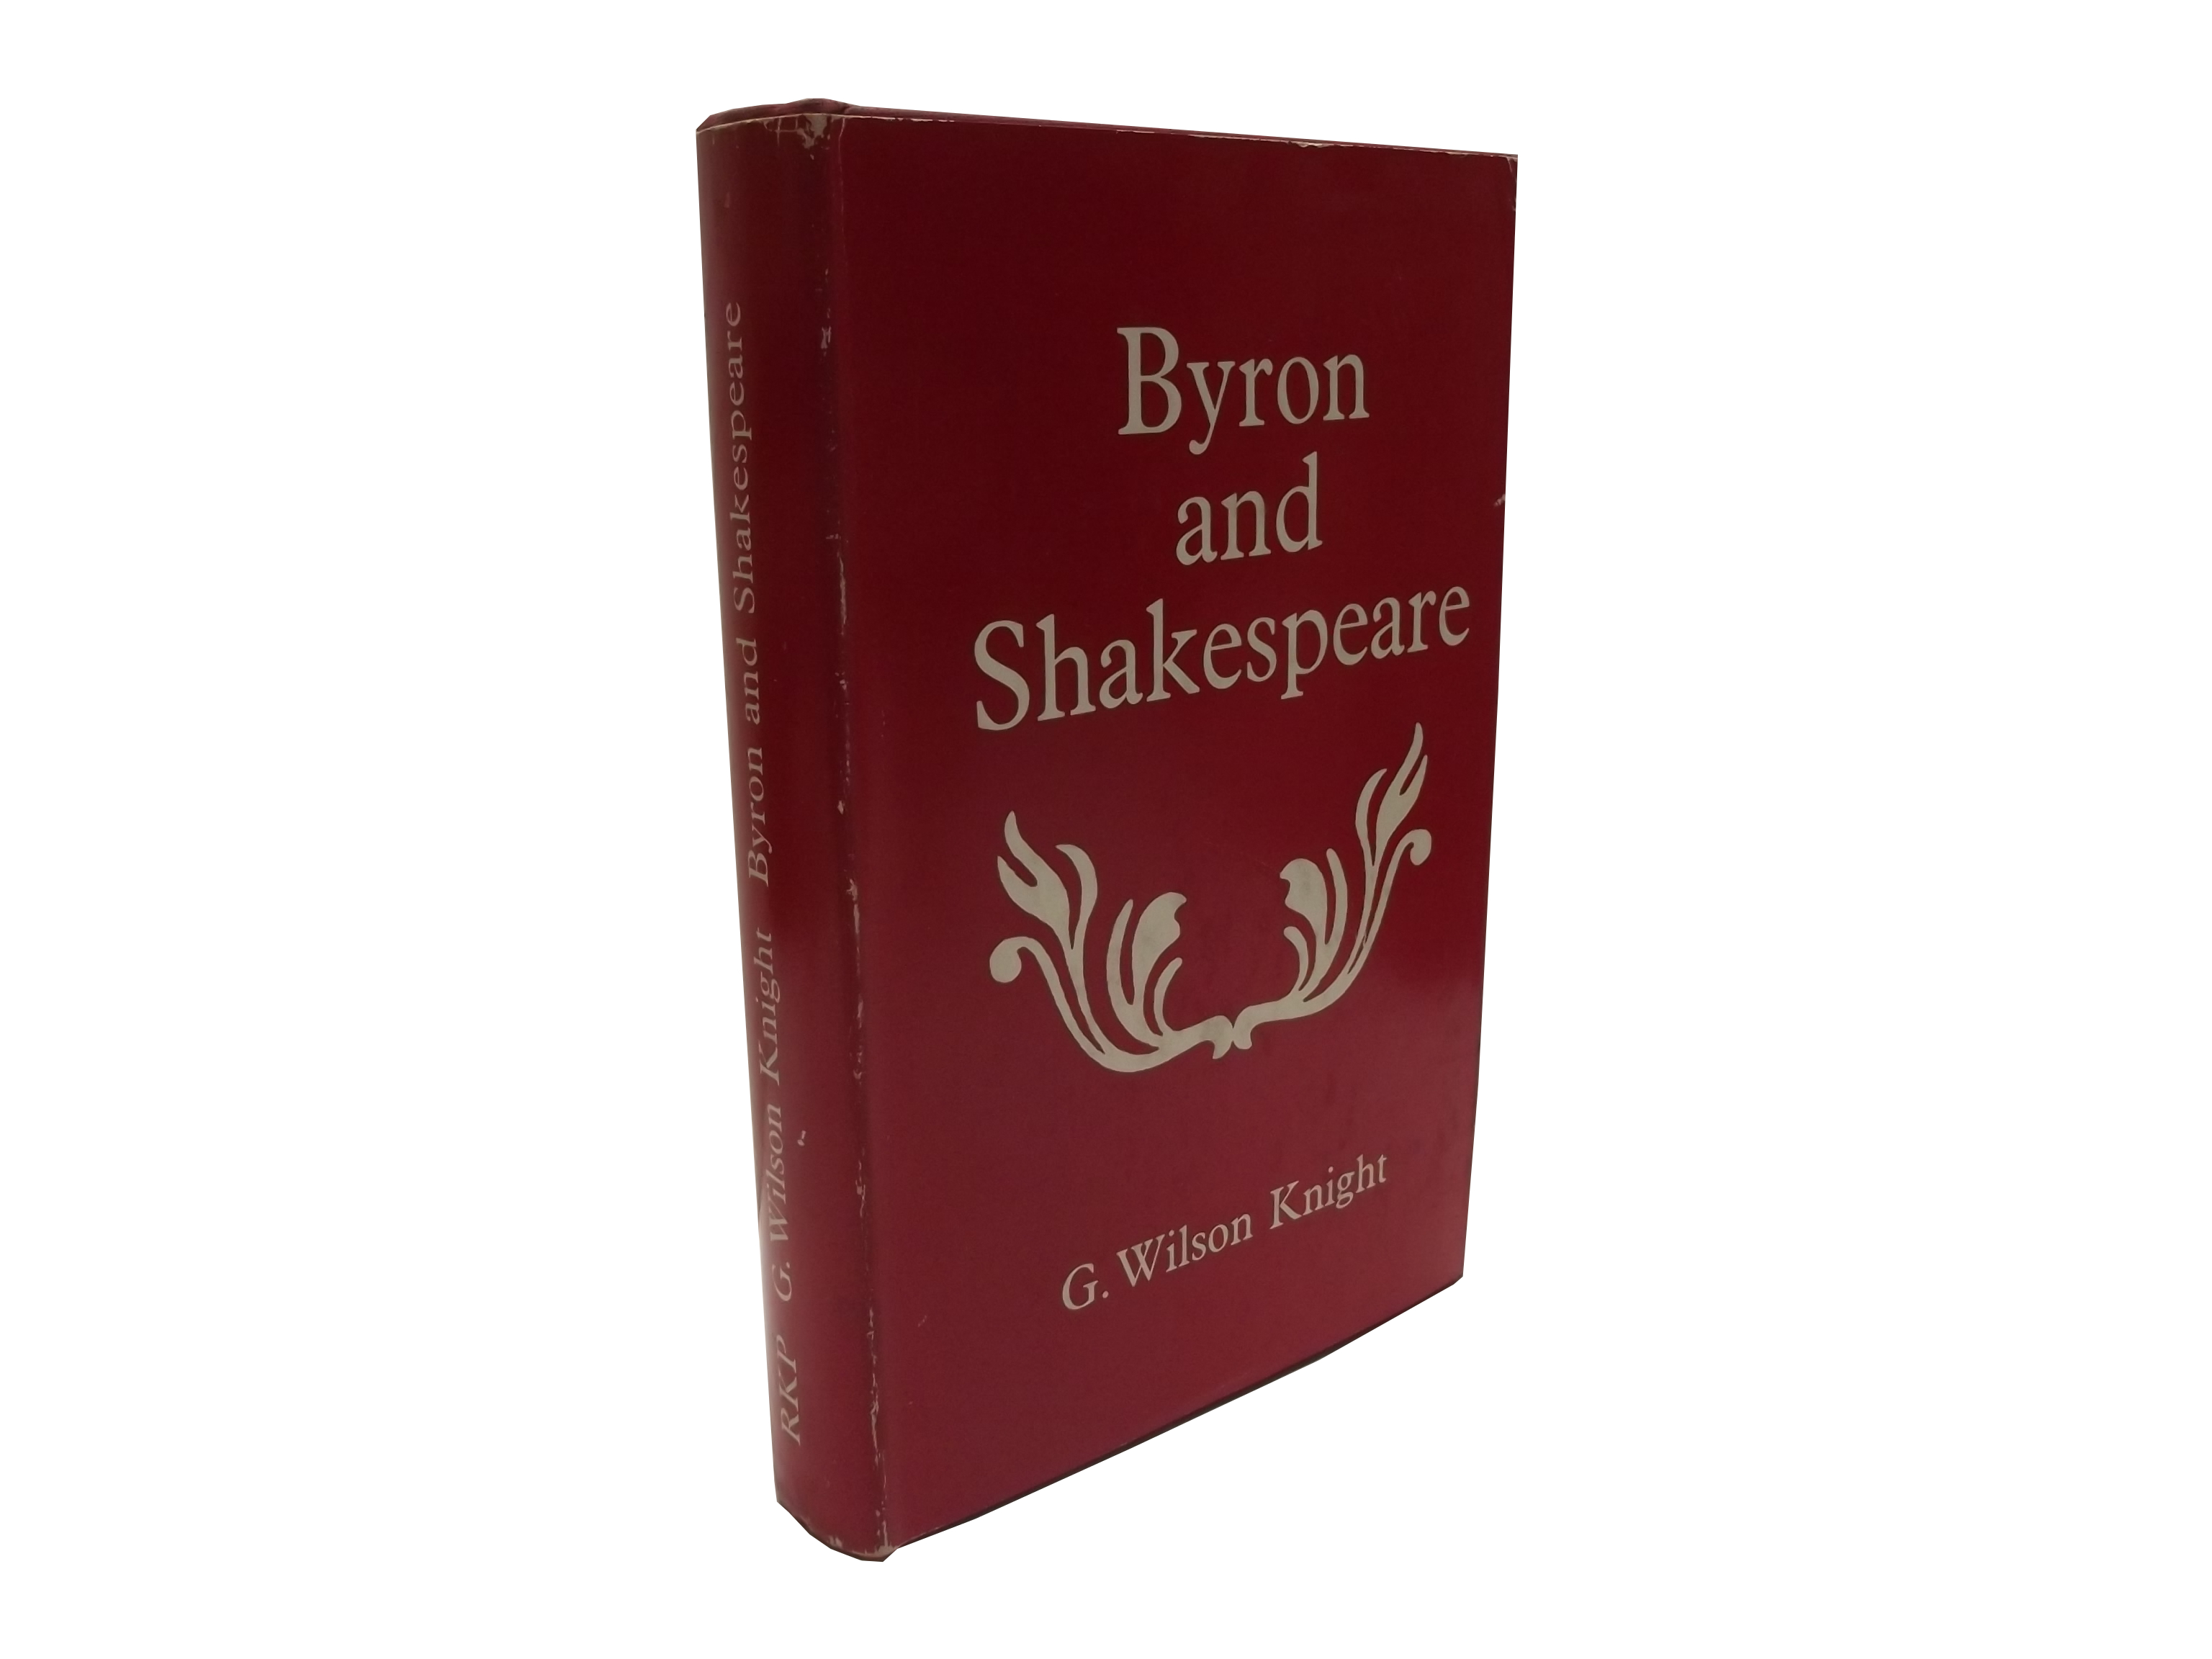 Byron and Shakespeare